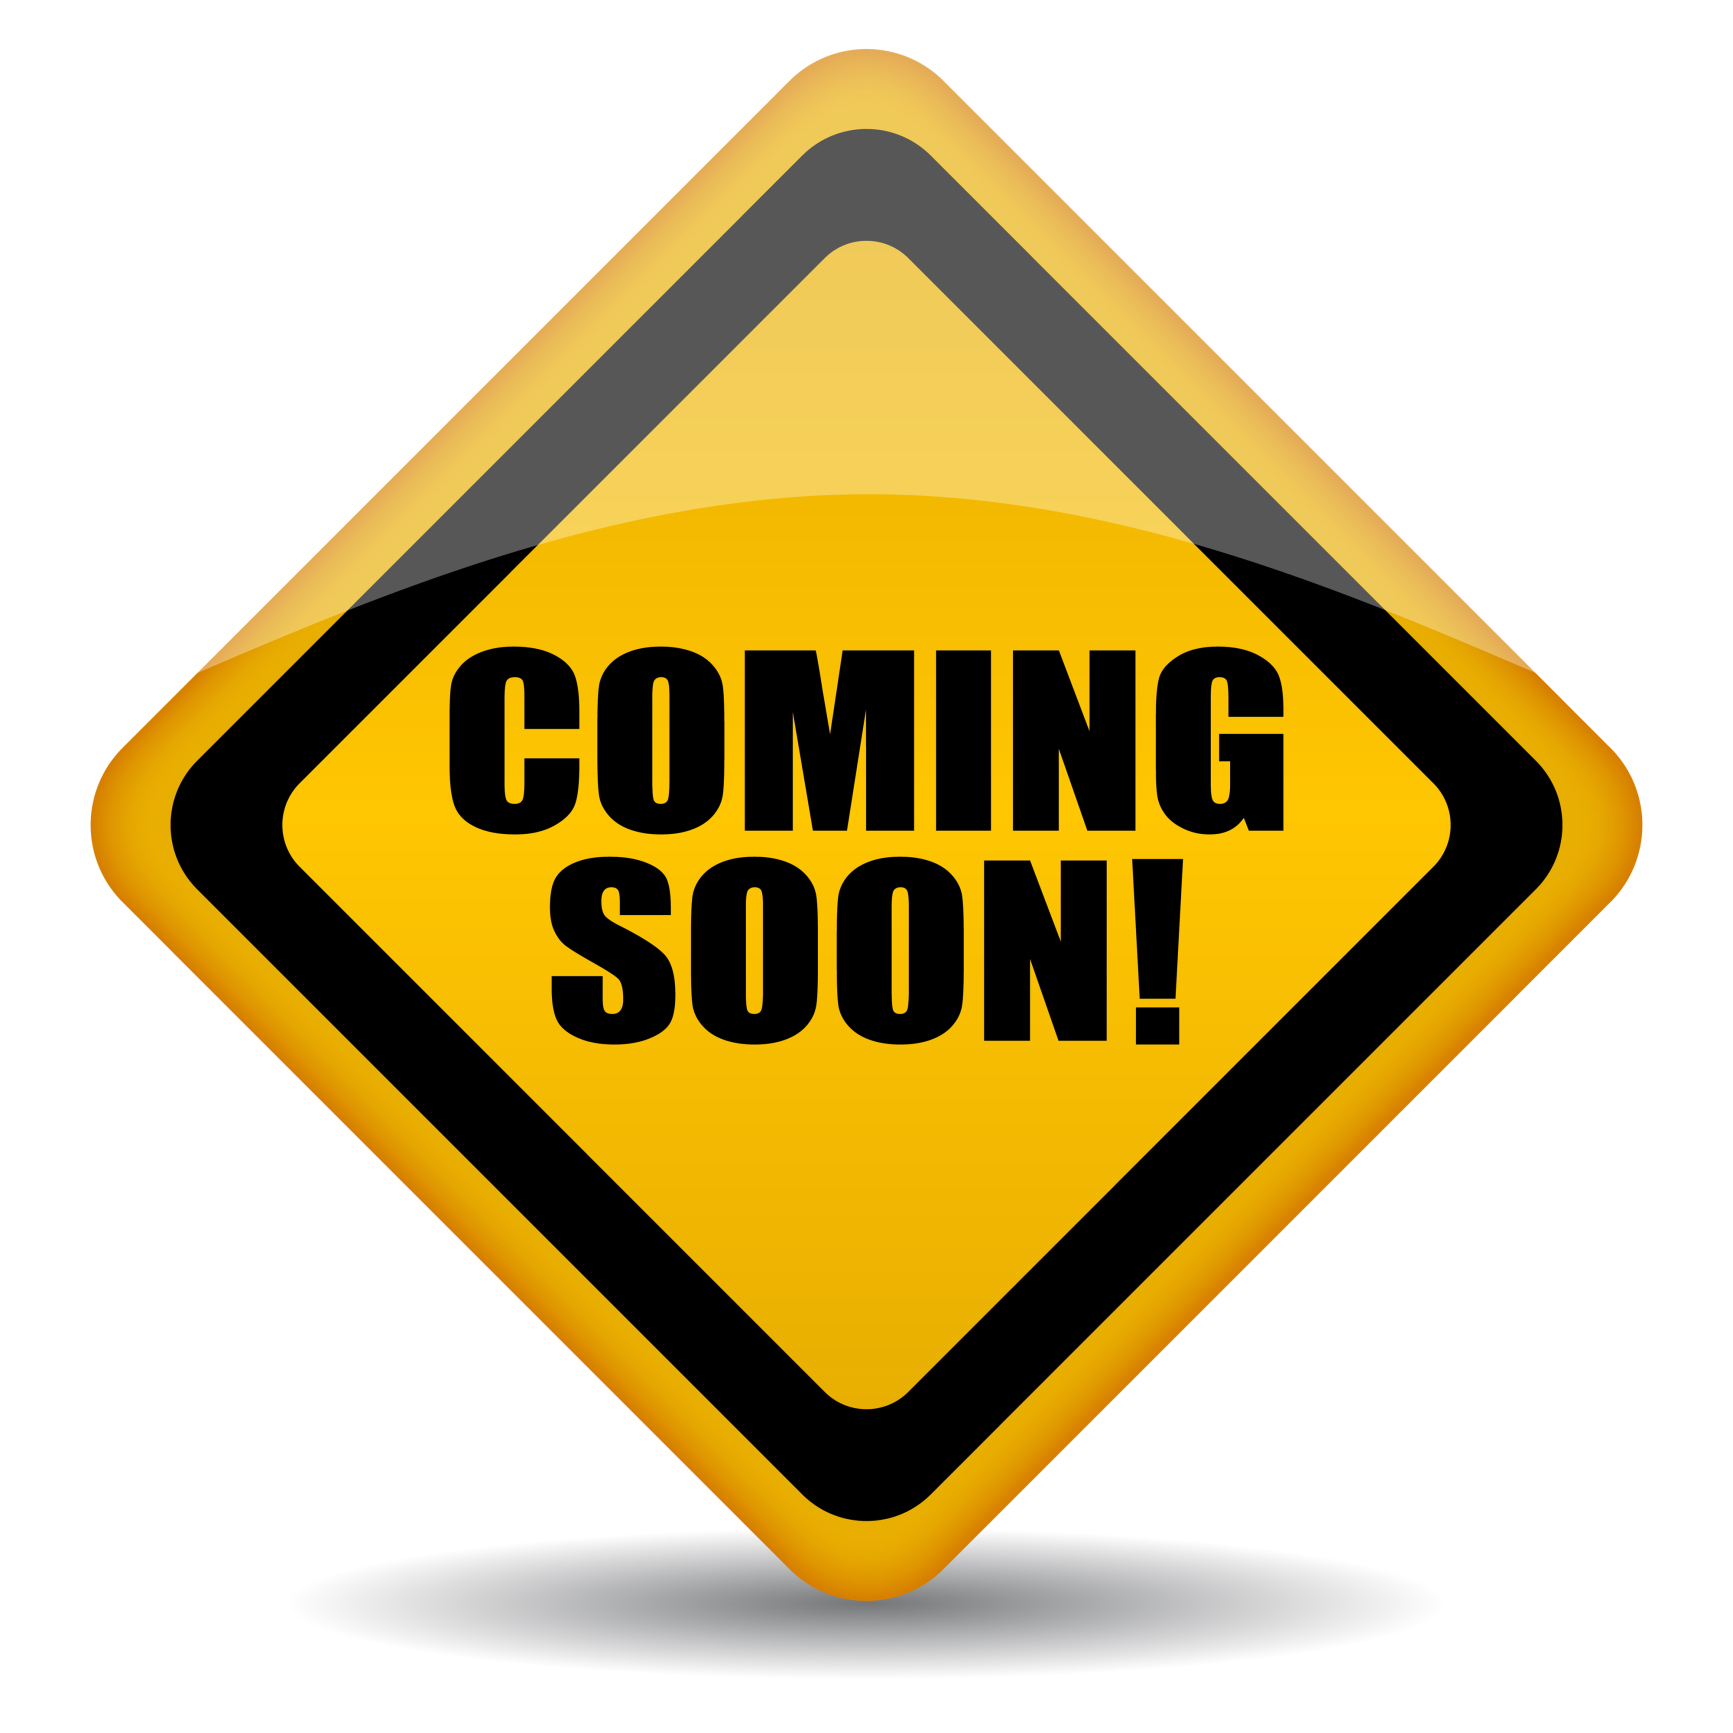 Coming Soon sign drawing free image